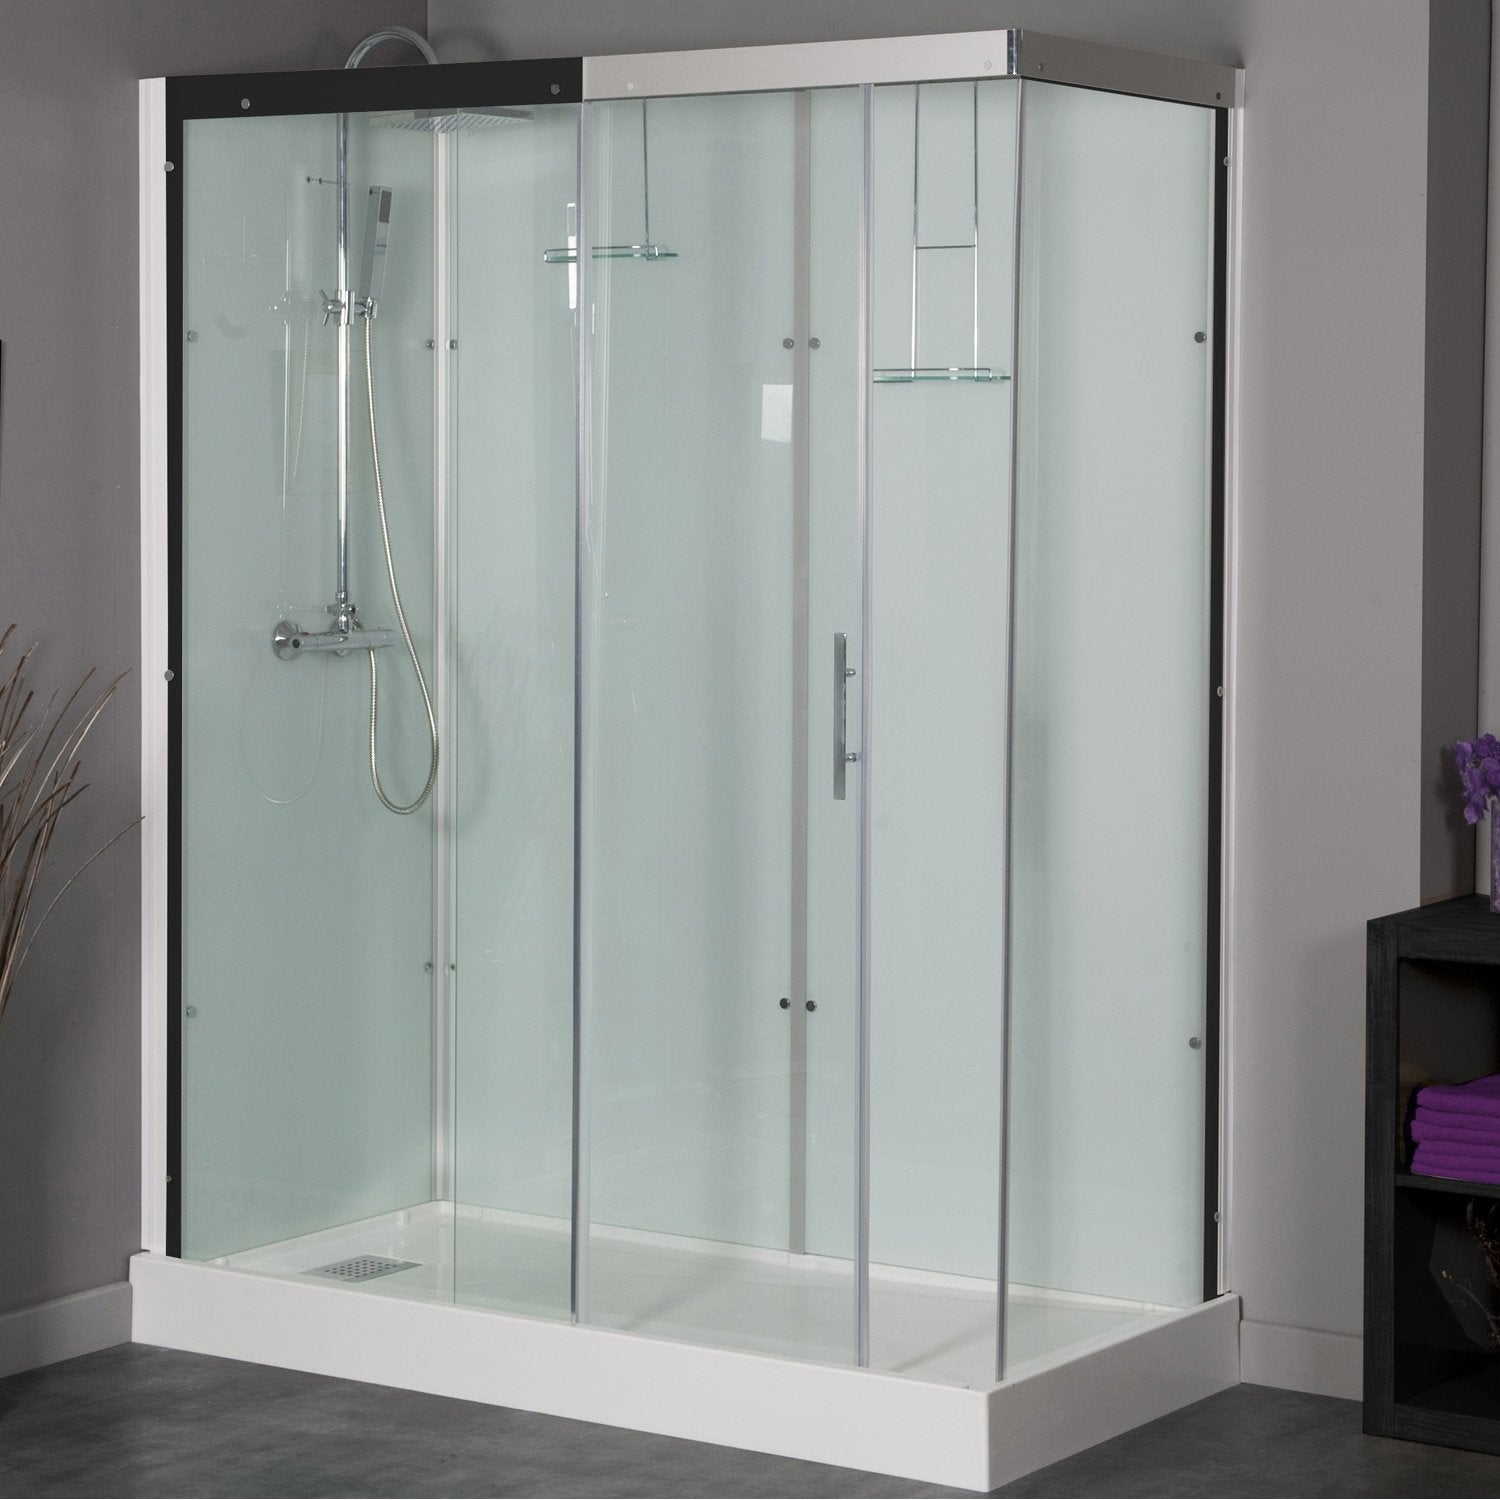 Cabine de douche rectangulaire 160x80 cm thalaglass 2 for Carrelage douche leroy merlin